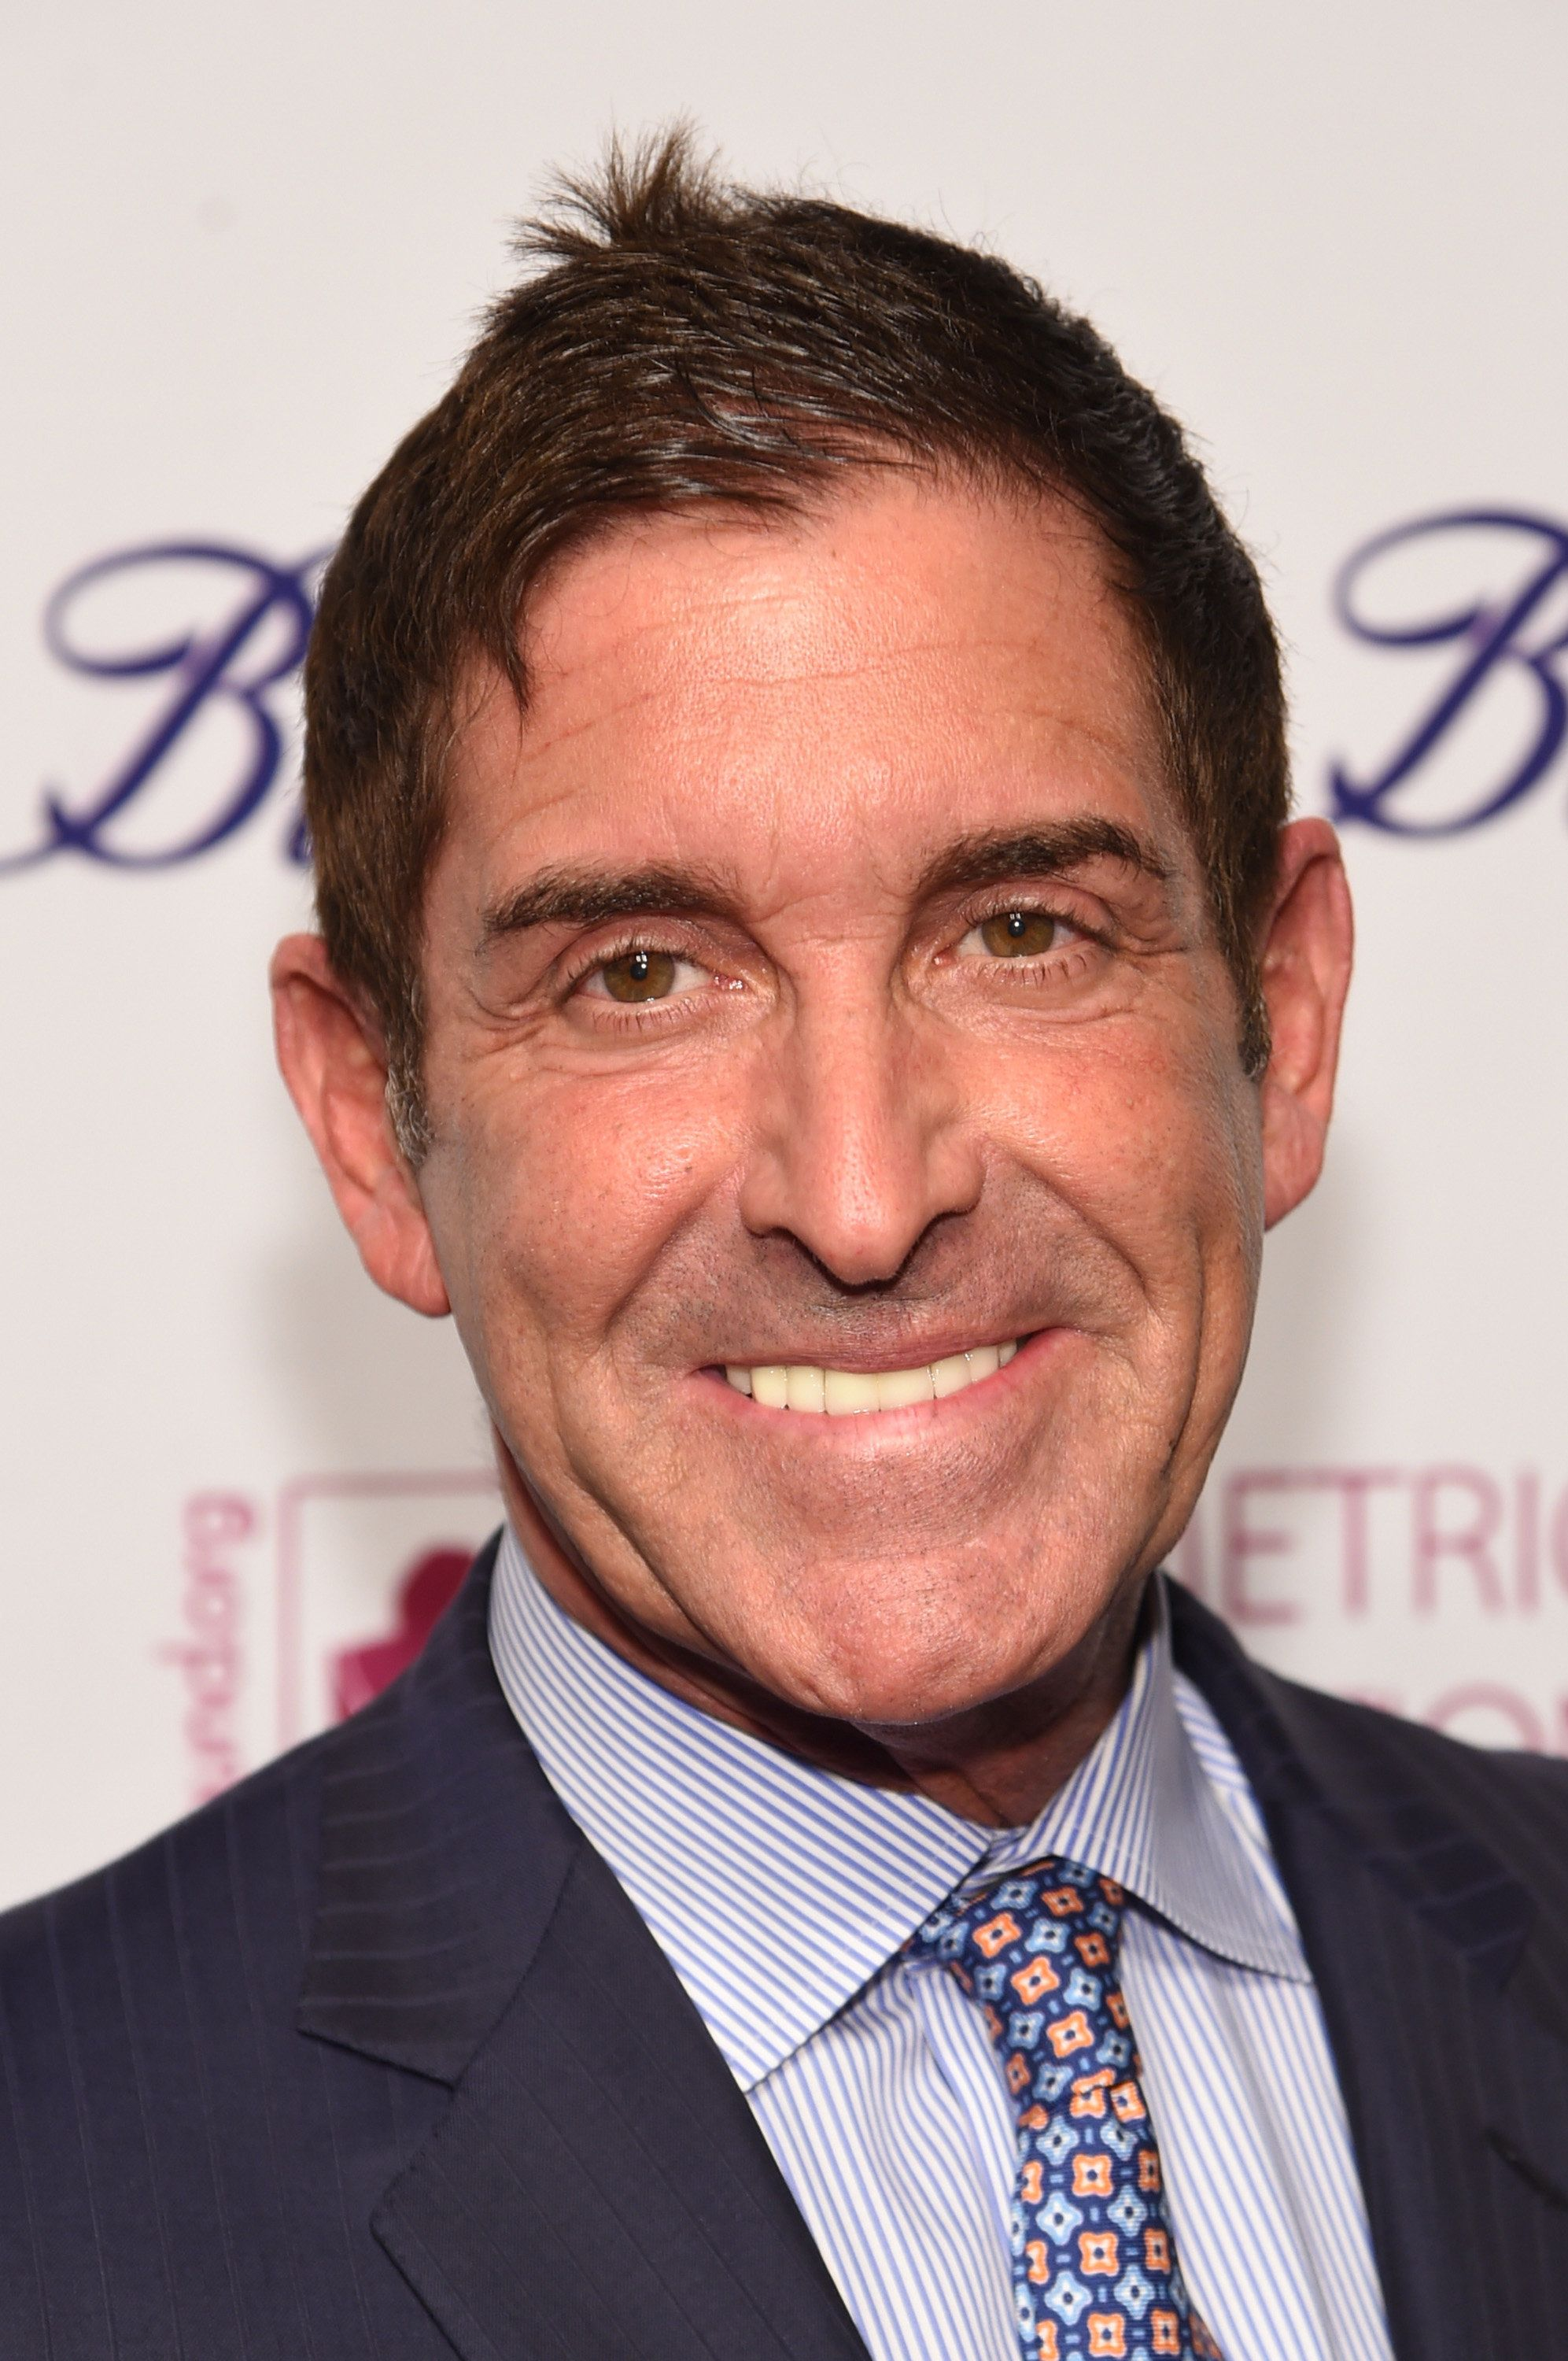 NEW YORK, NY - APRIL 13:  Senator Jeff Klein attends EFA's 7th Annual Blossom Ball at Cipriani Downtown on April 13, 2015 in New York City.  (Photo by Jamie McCarthy/Getty Images)